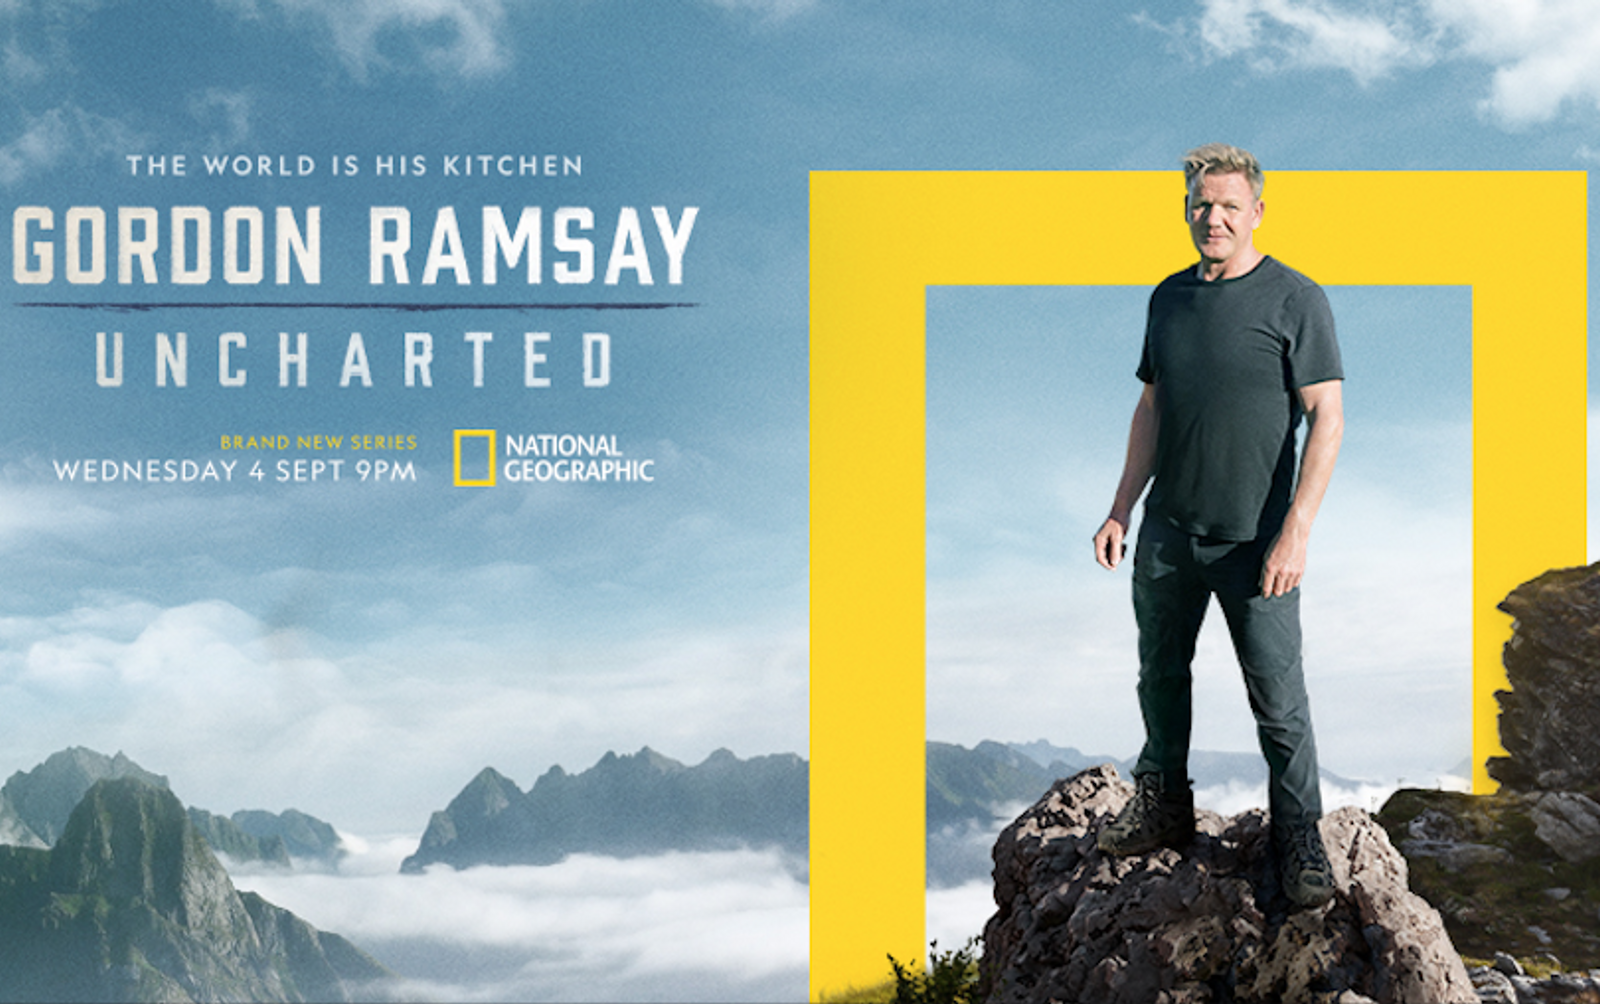 Gordon Ramsay – Uncharted: Watch the Trailer